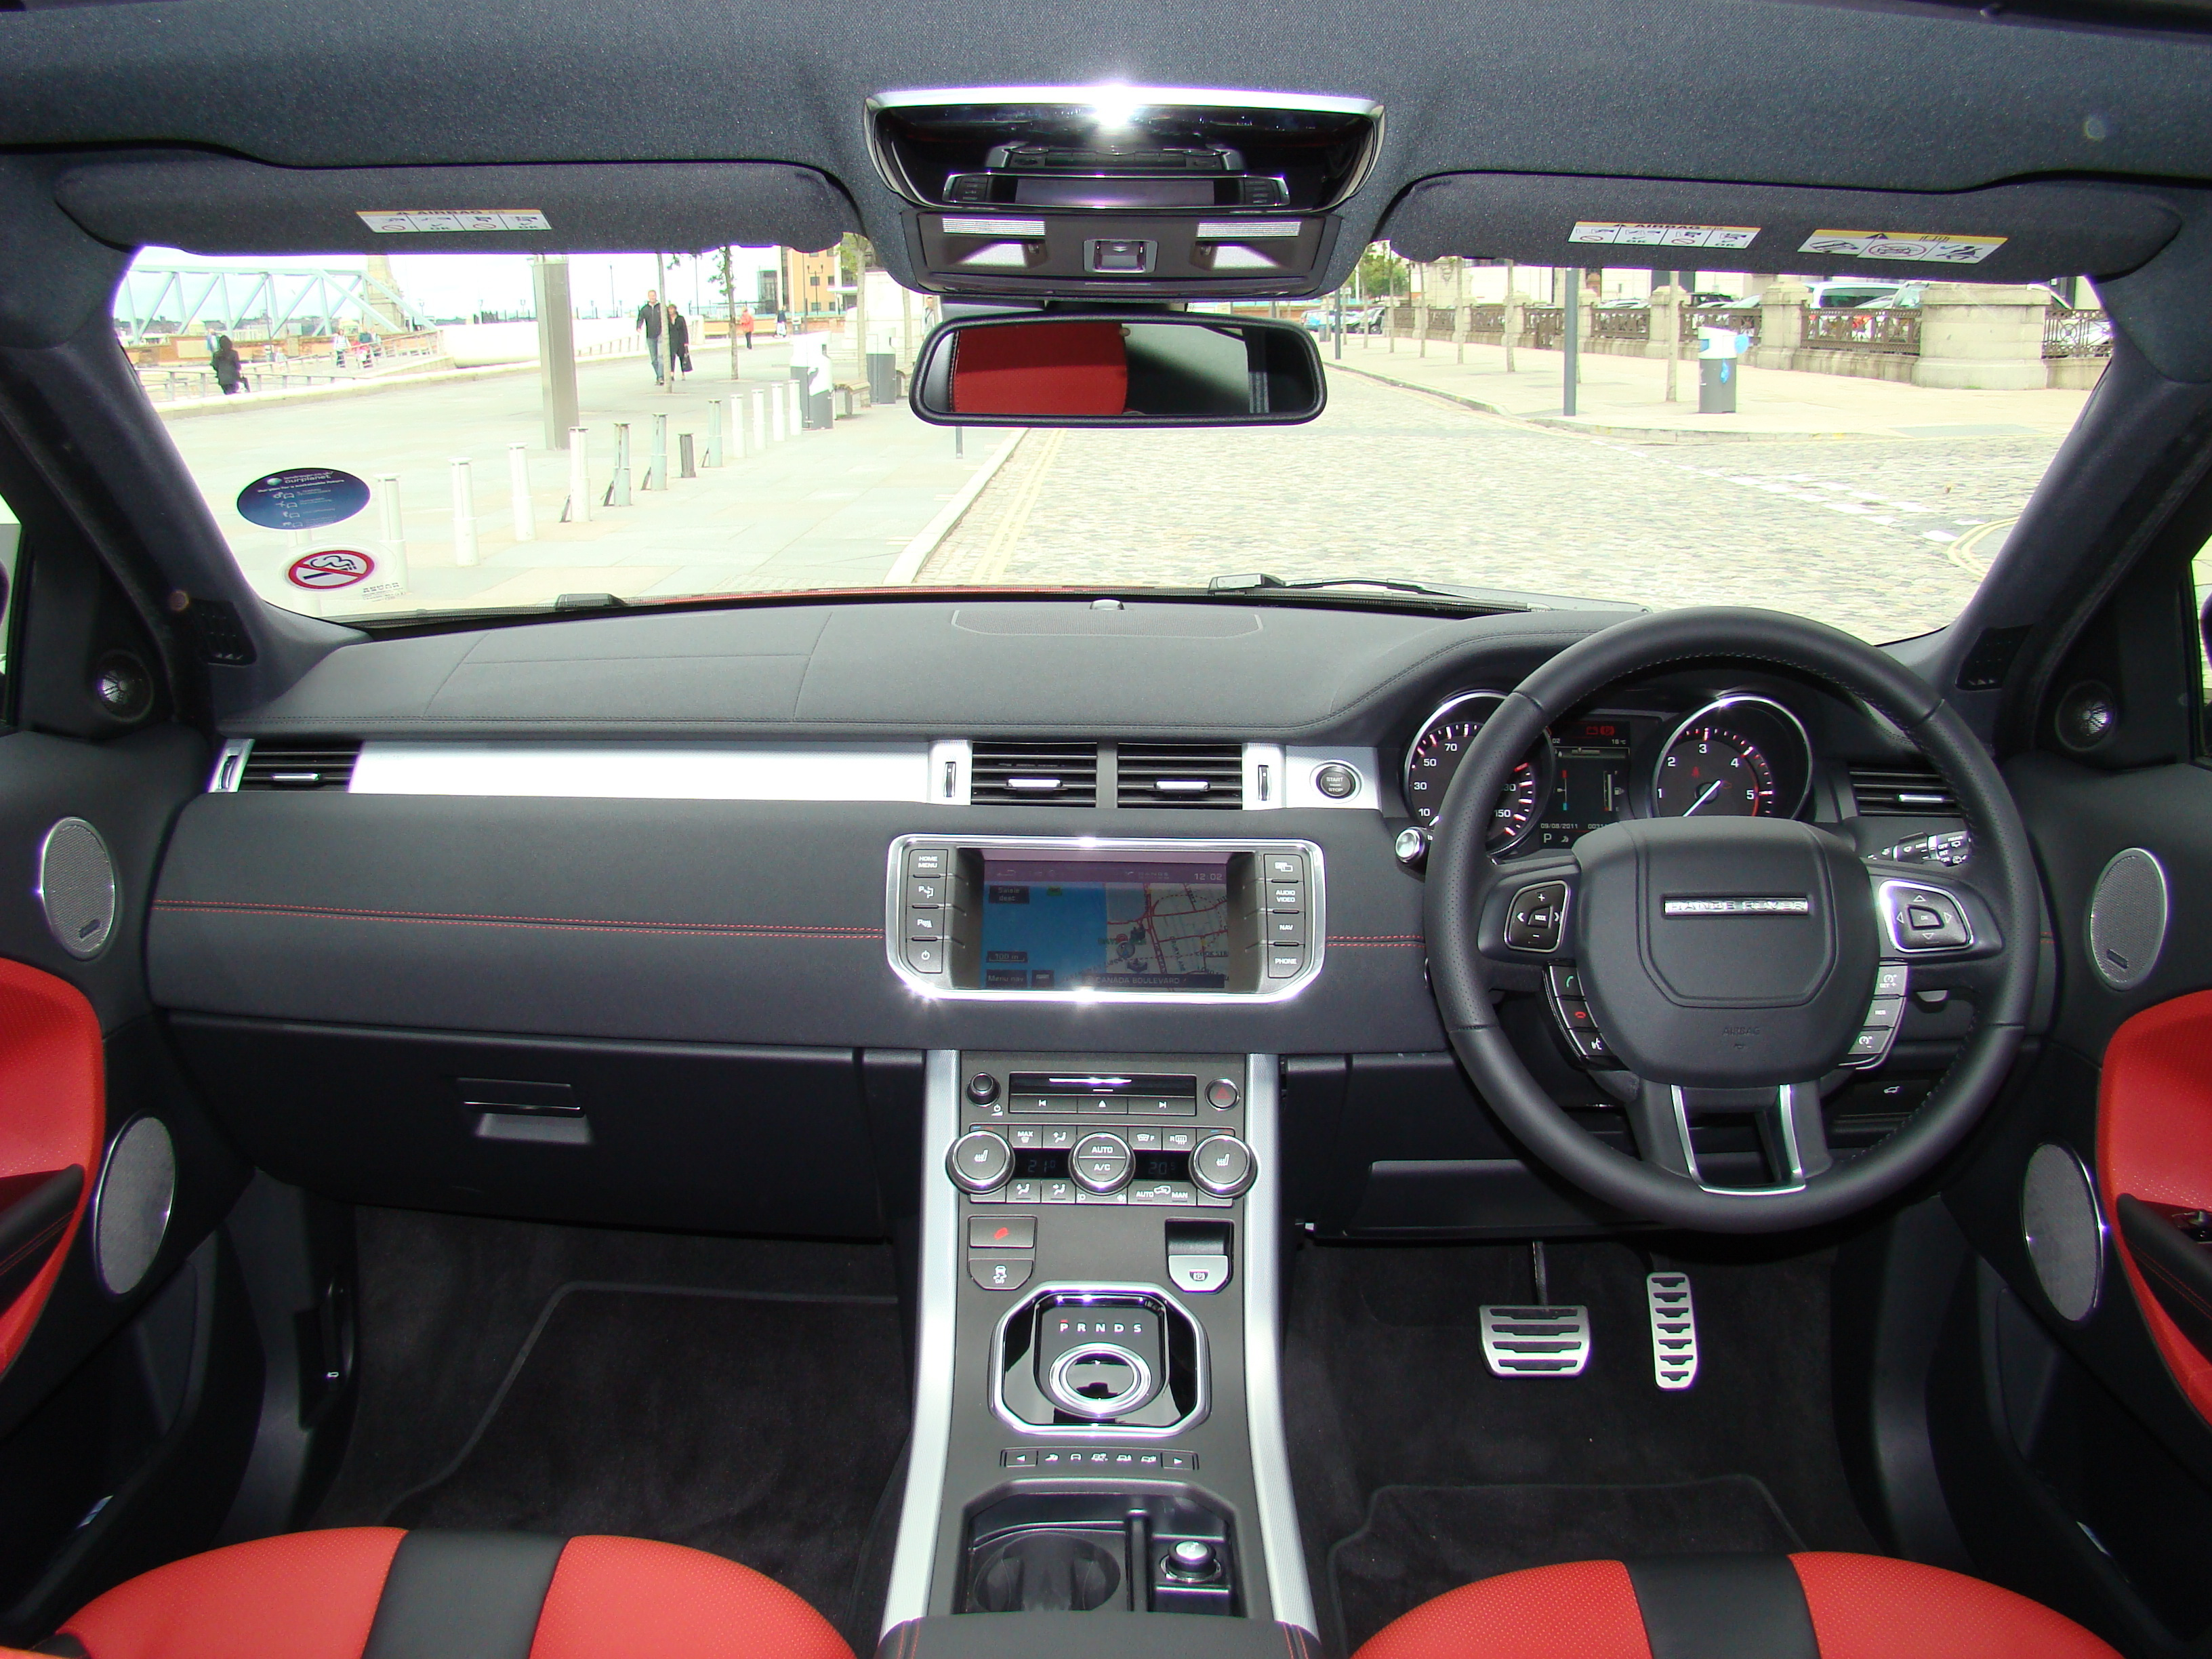 Essai land rover range rover evoque chic et sport on for Interieur range rover evoque